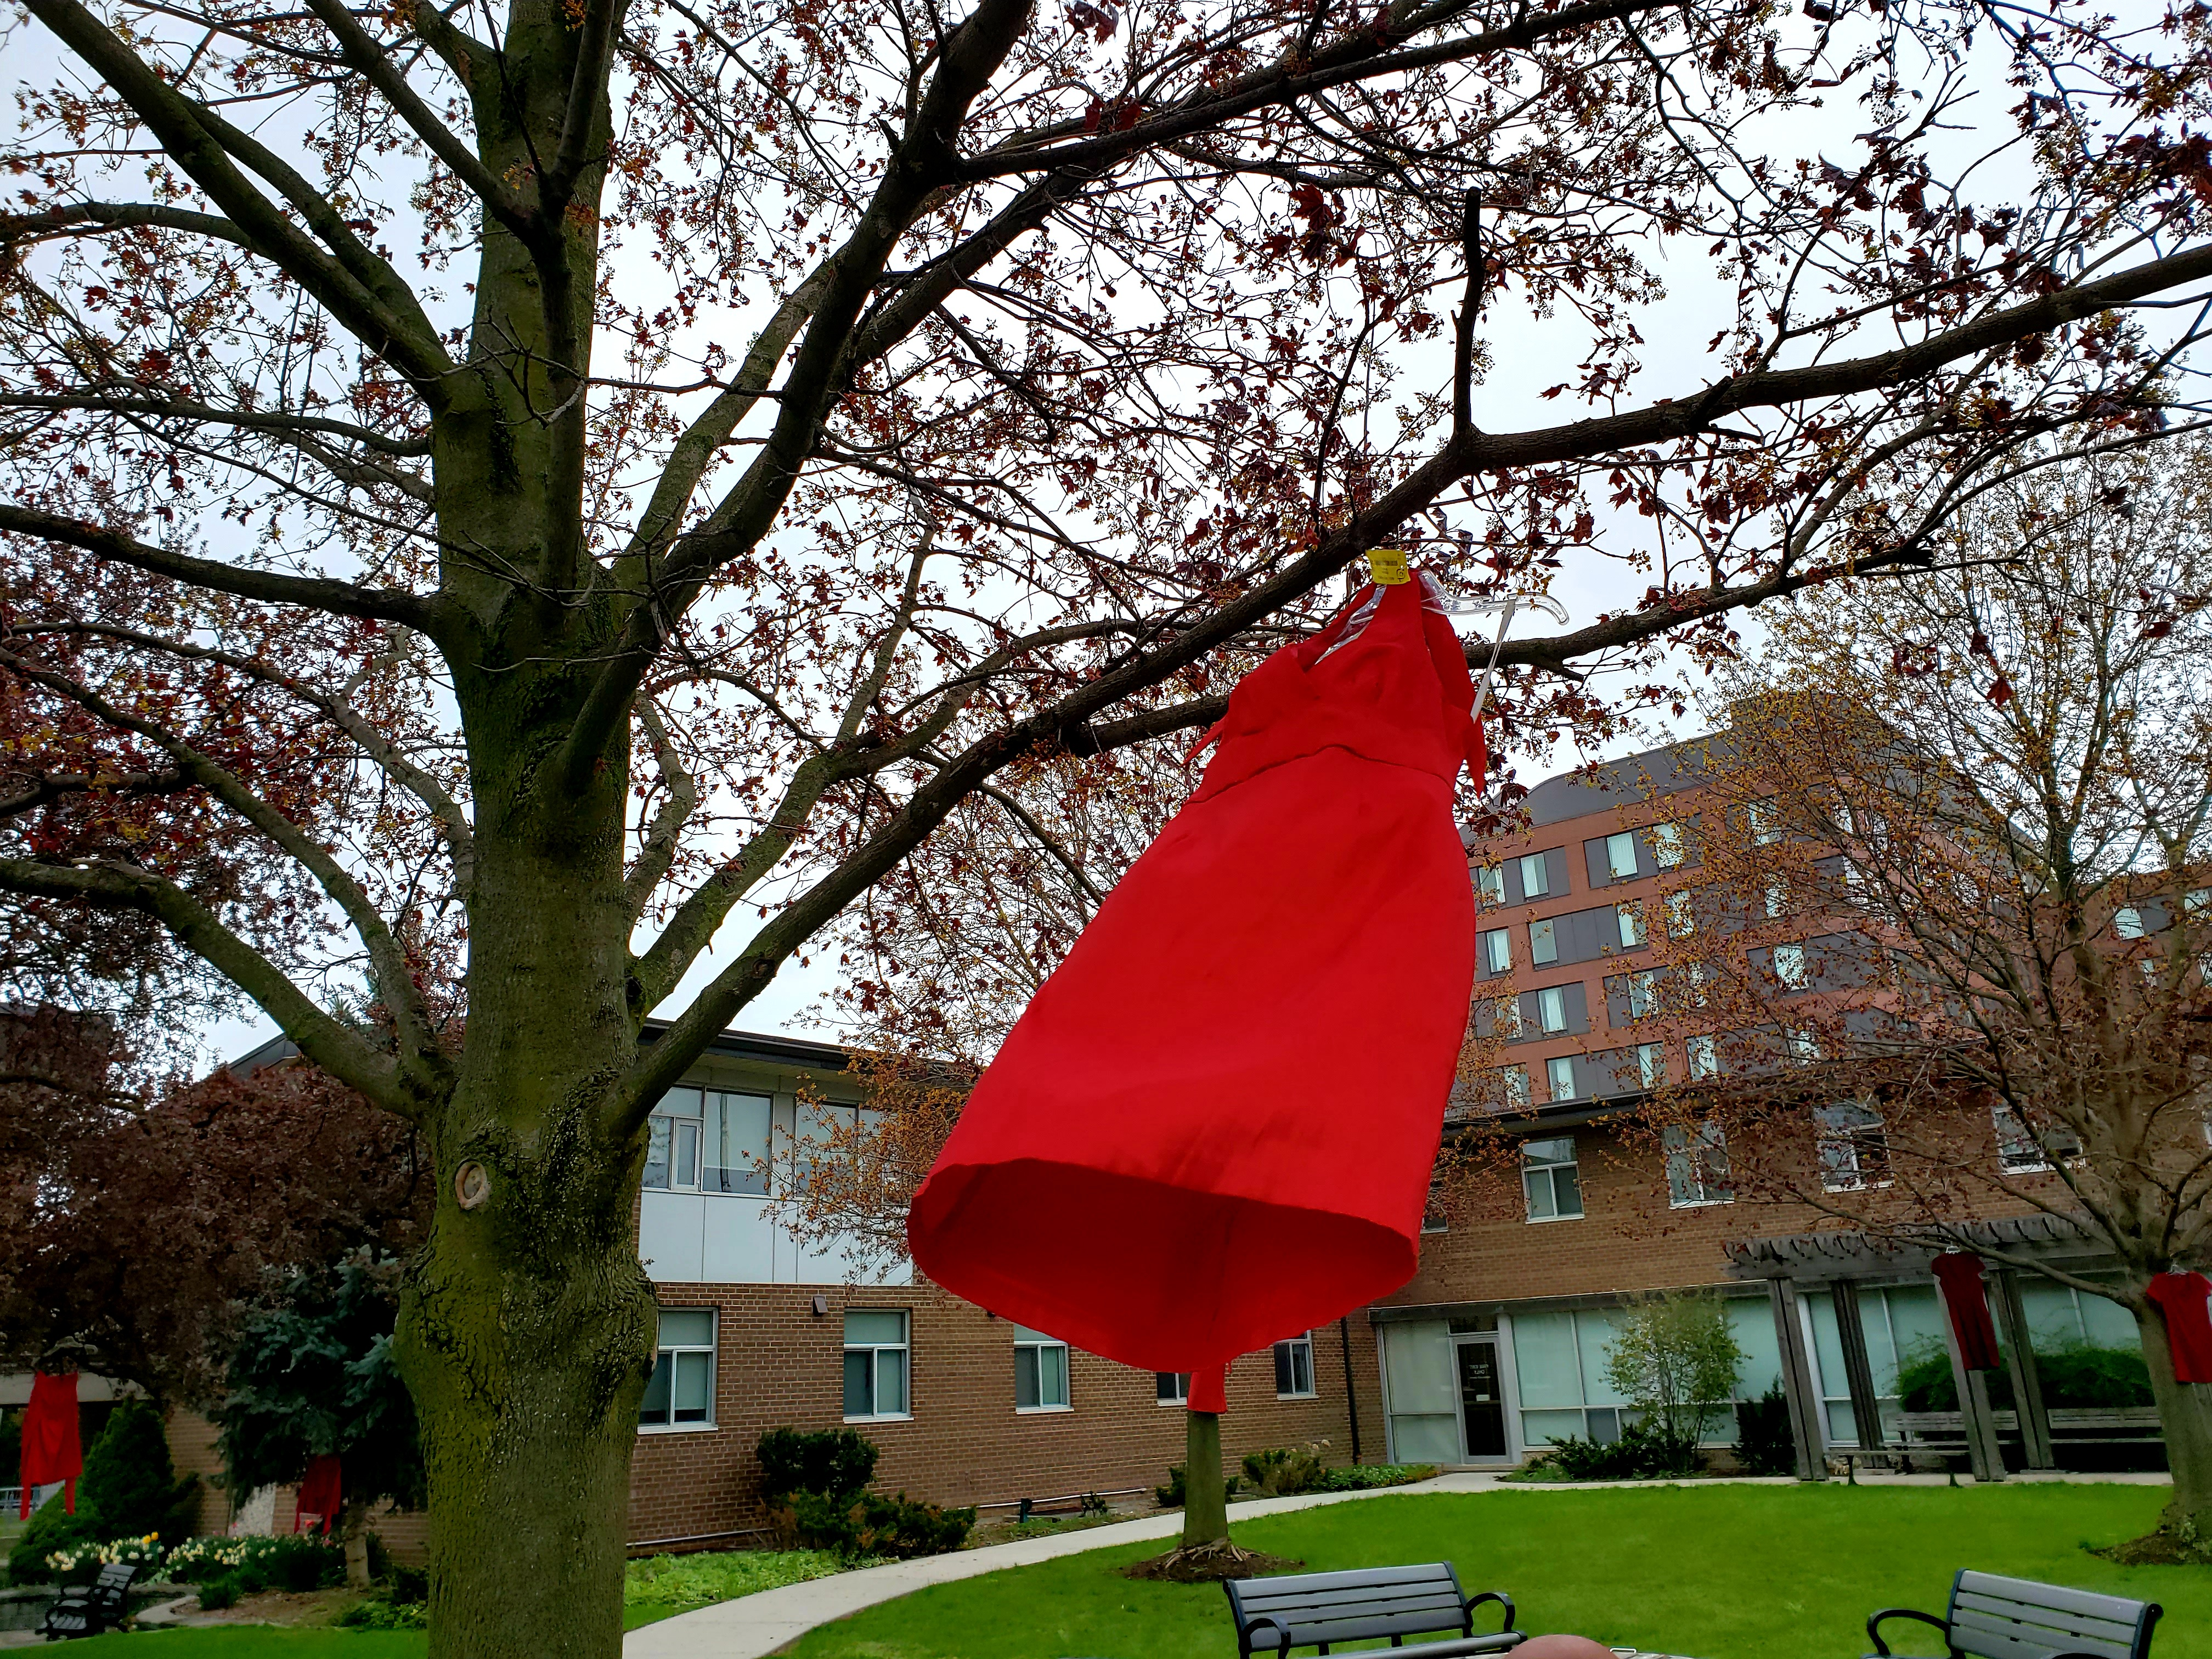 The Red Dress Day installation at SJU's Alumni Court